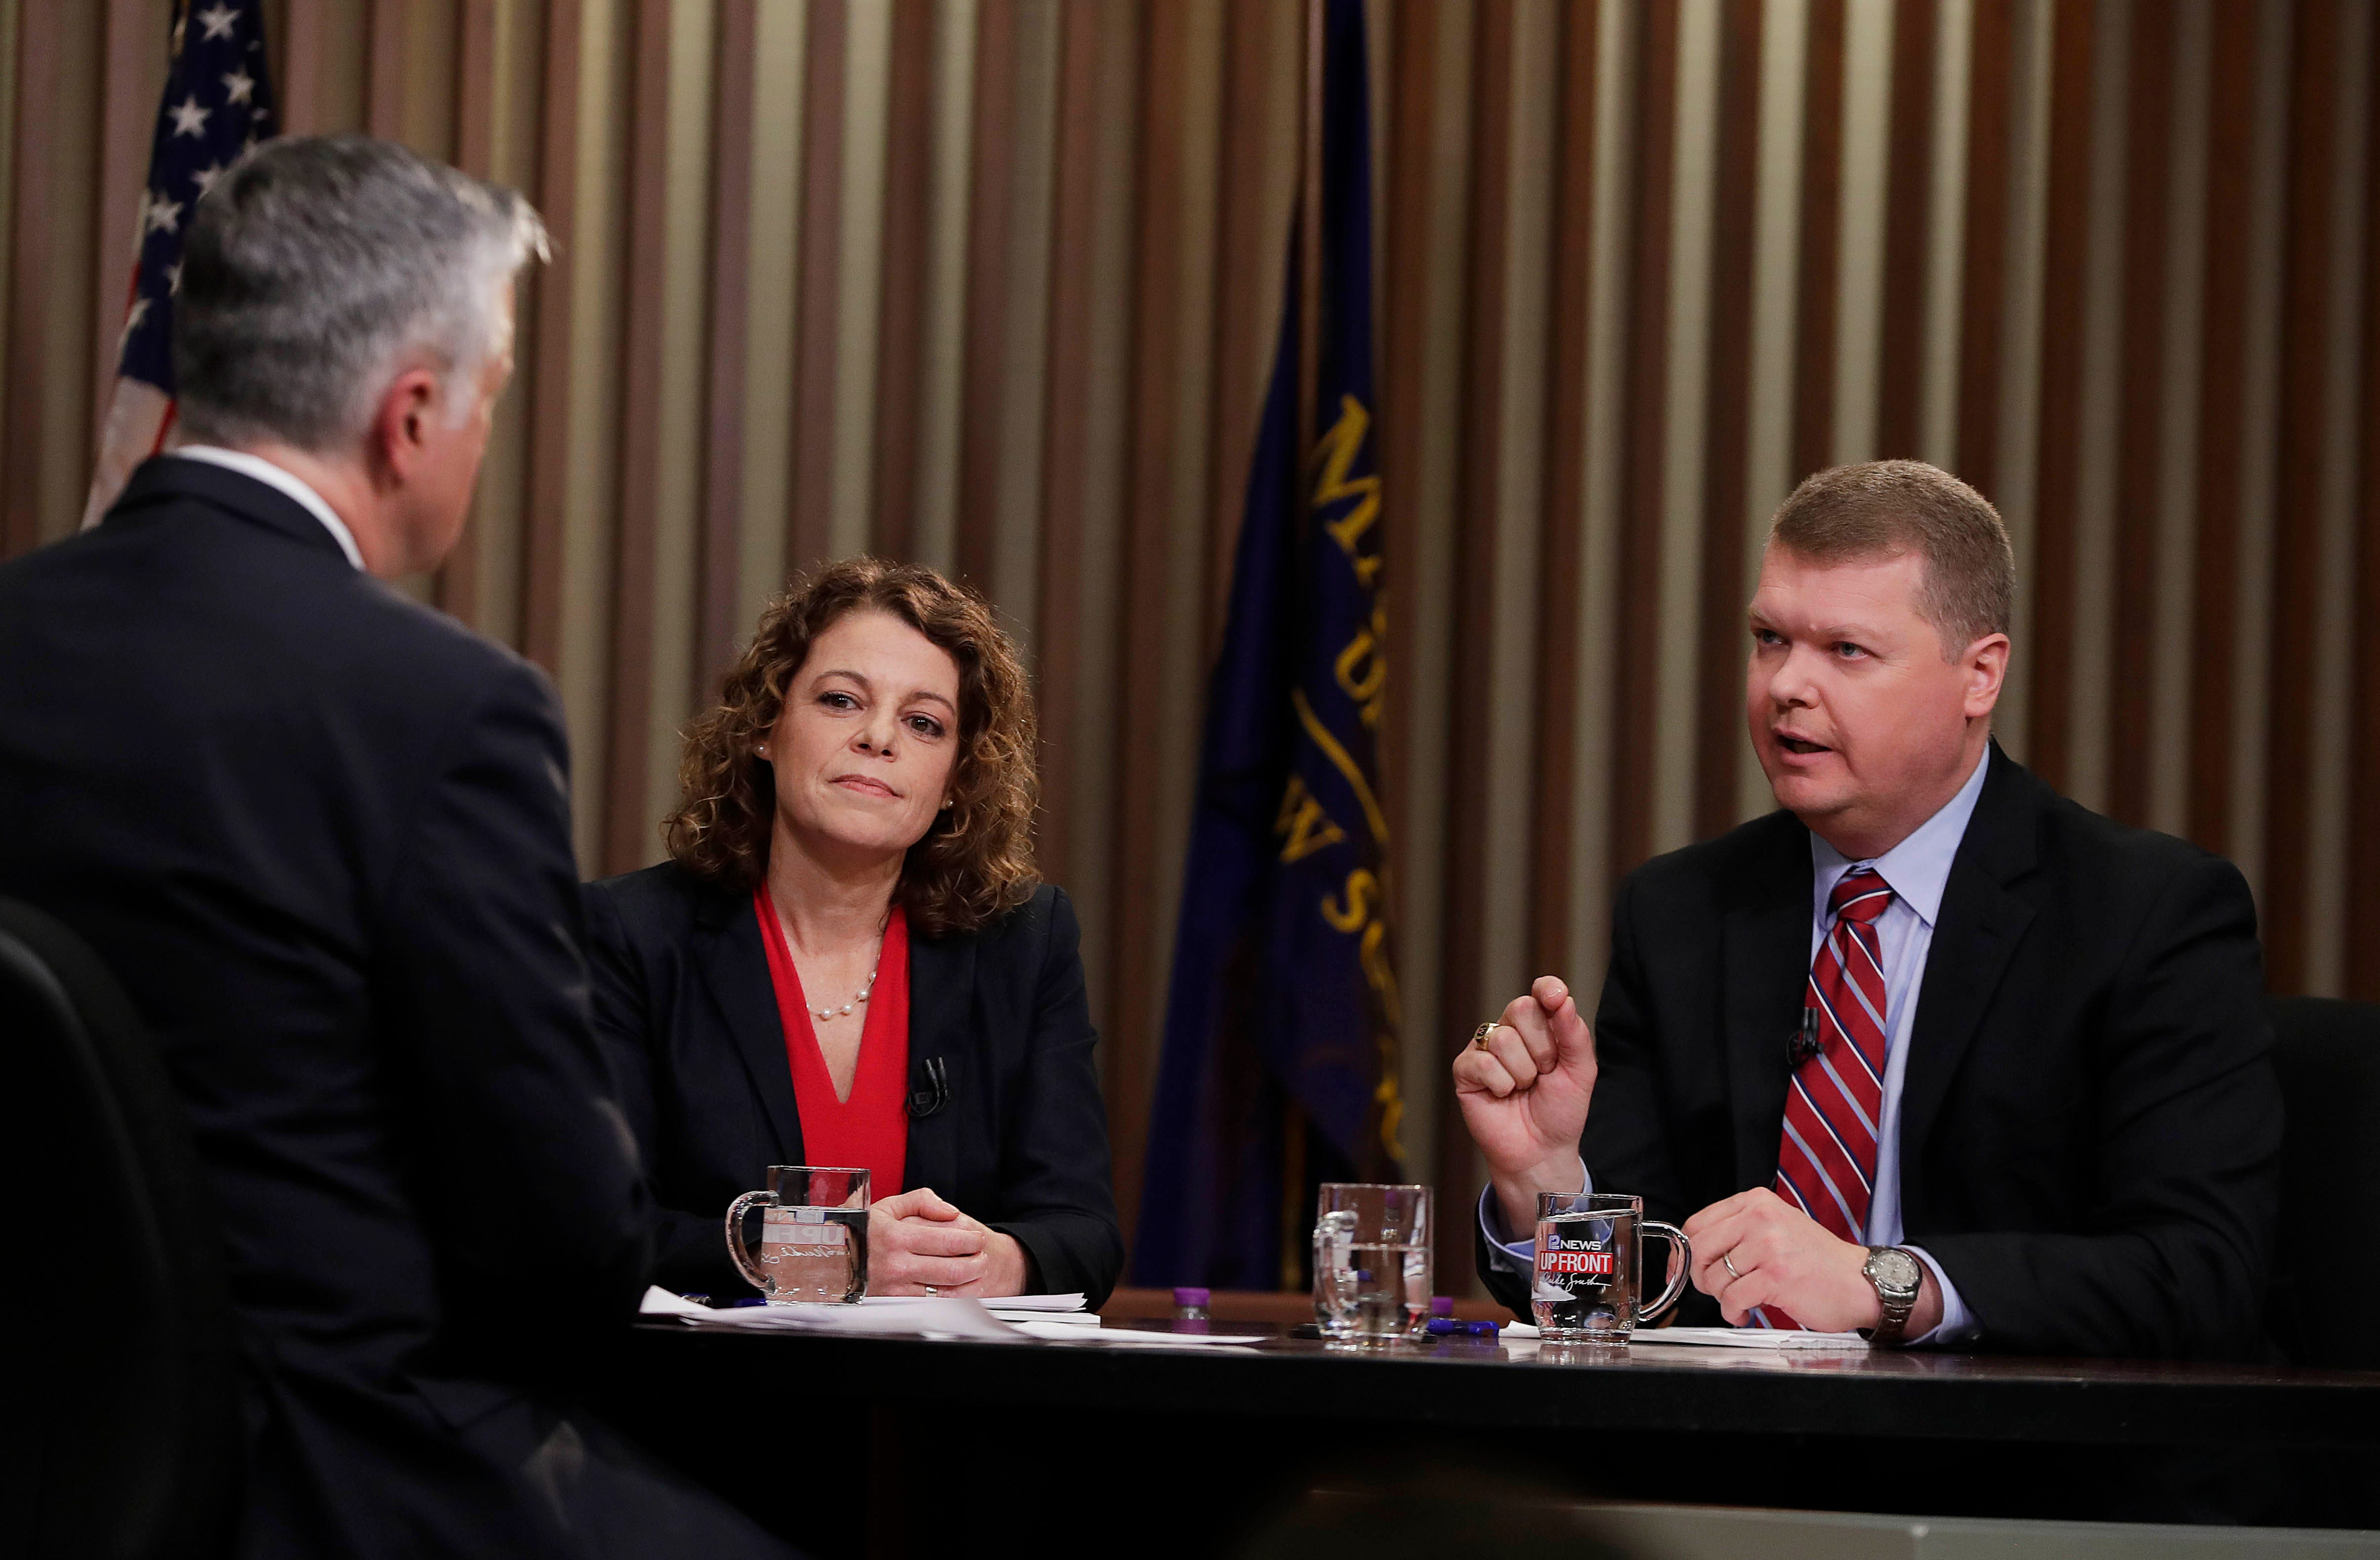 Rebecca Dallet and Michael Screnock rip each other over sentencing in state Supreme Court race   Milwaukee Journal Sentinel